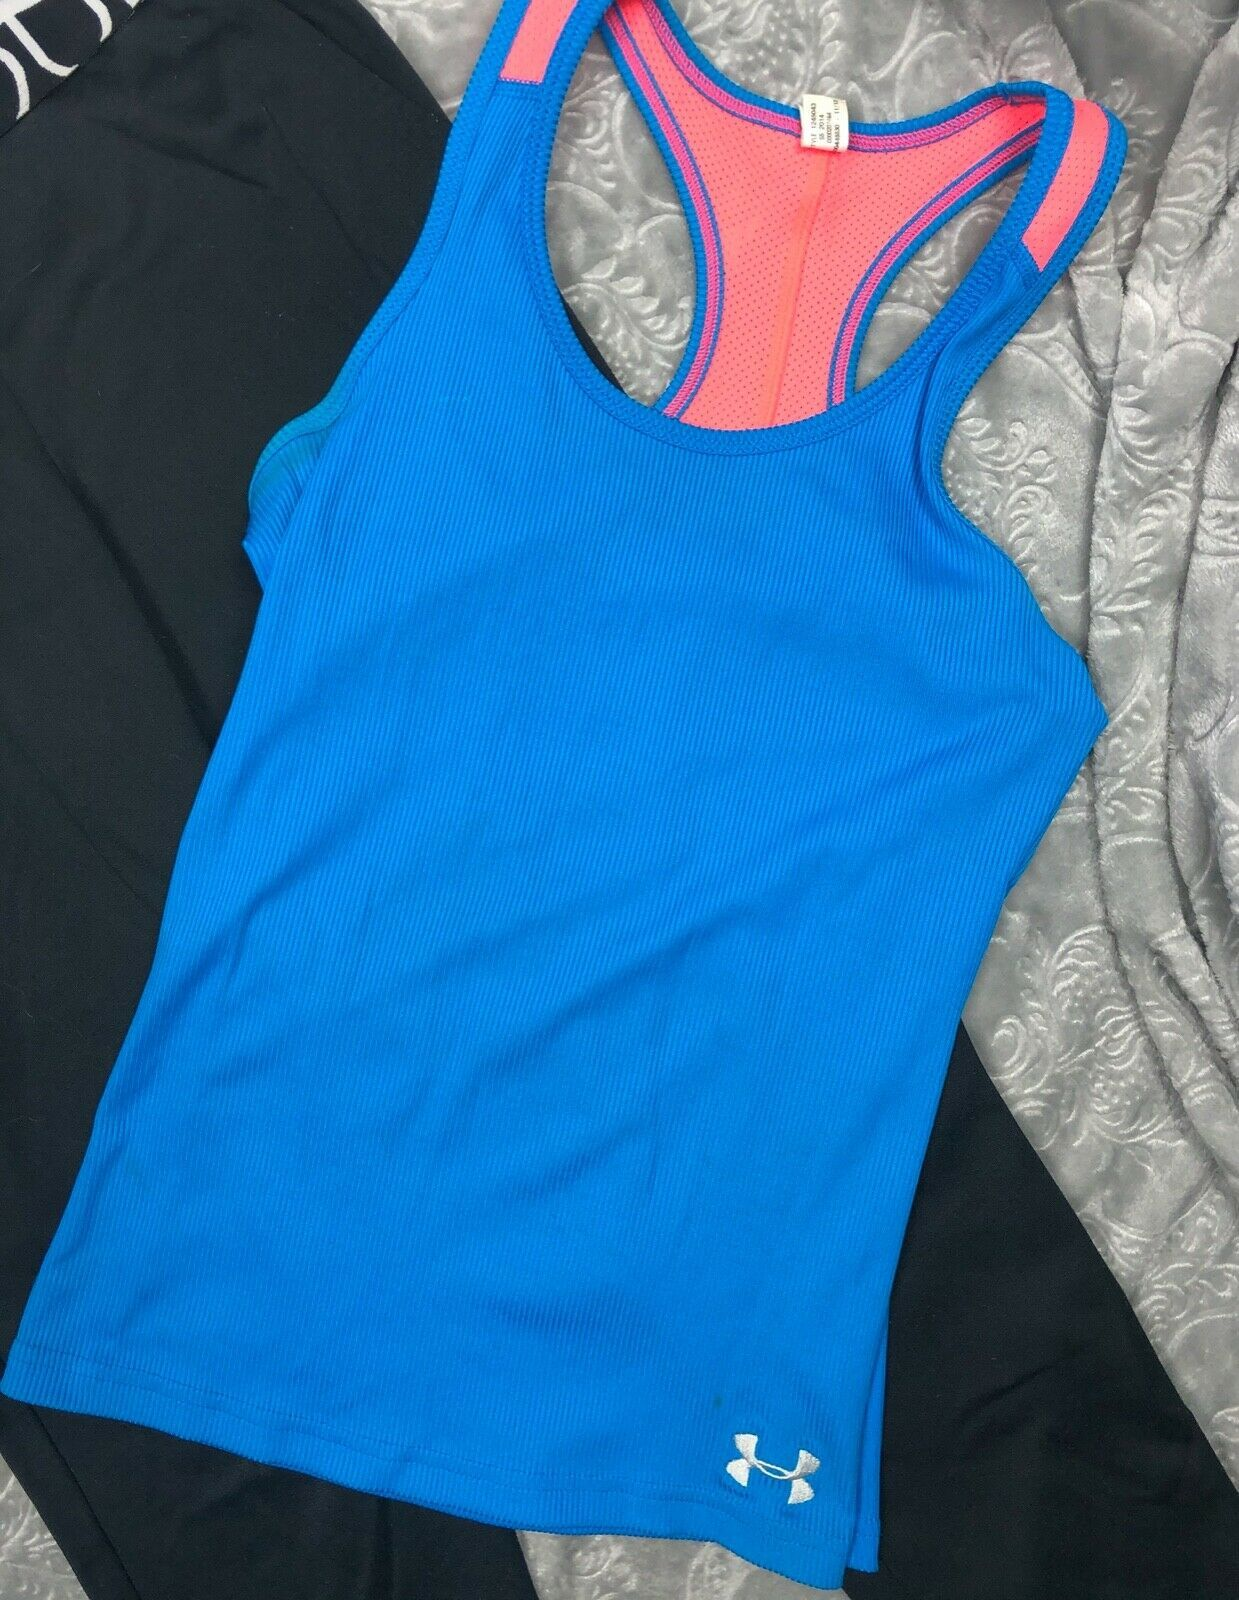 UNDER ARMOUR TANK TOP + BLACK PANTS OUTFIT LOT GIRL'S YMD image 3